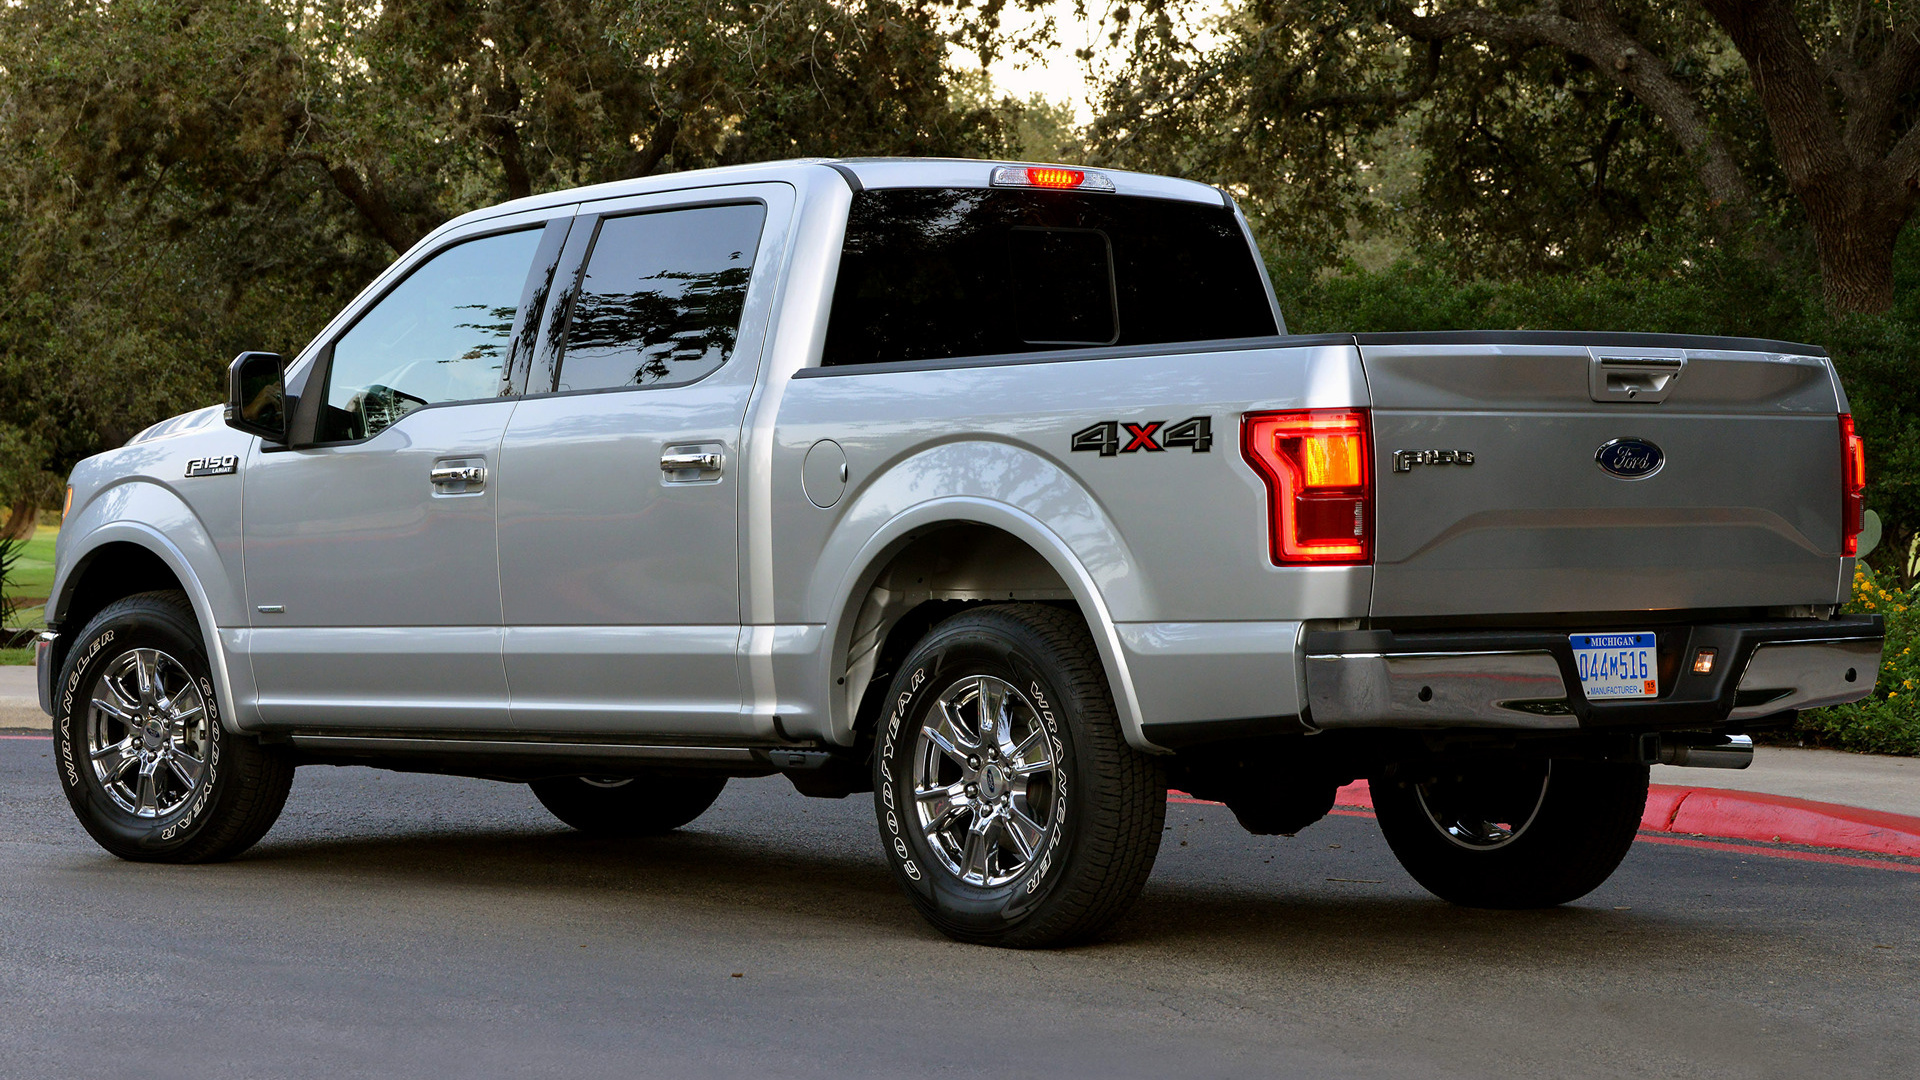 Ford Raptor For Sale In San Antonio Ford F-150 Lariat SuperCrew (2015) Wallpapers and HD Images